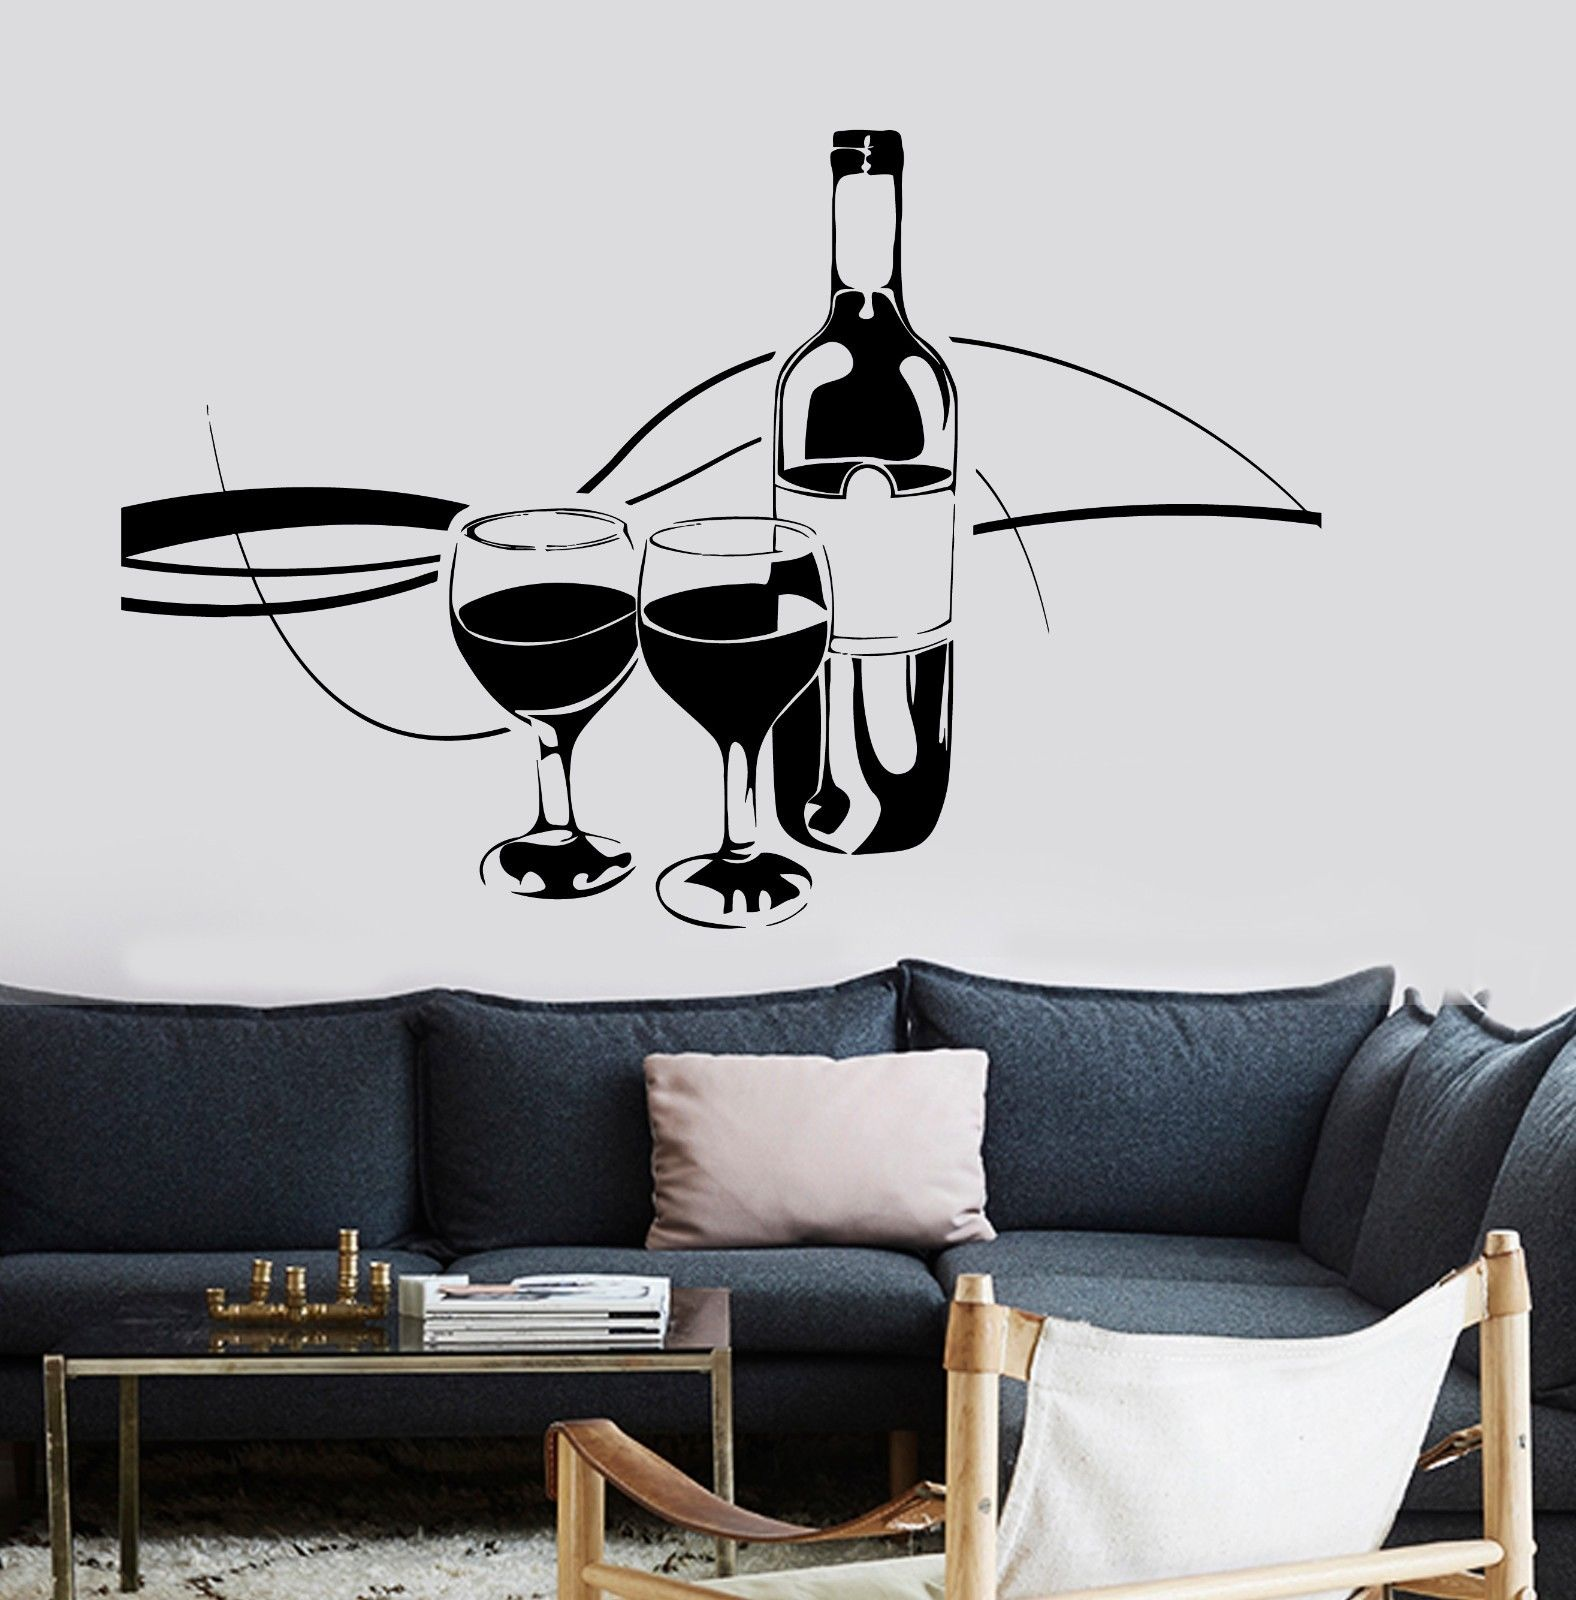 online cheap vinyl stickers for wine glasses aliexpress